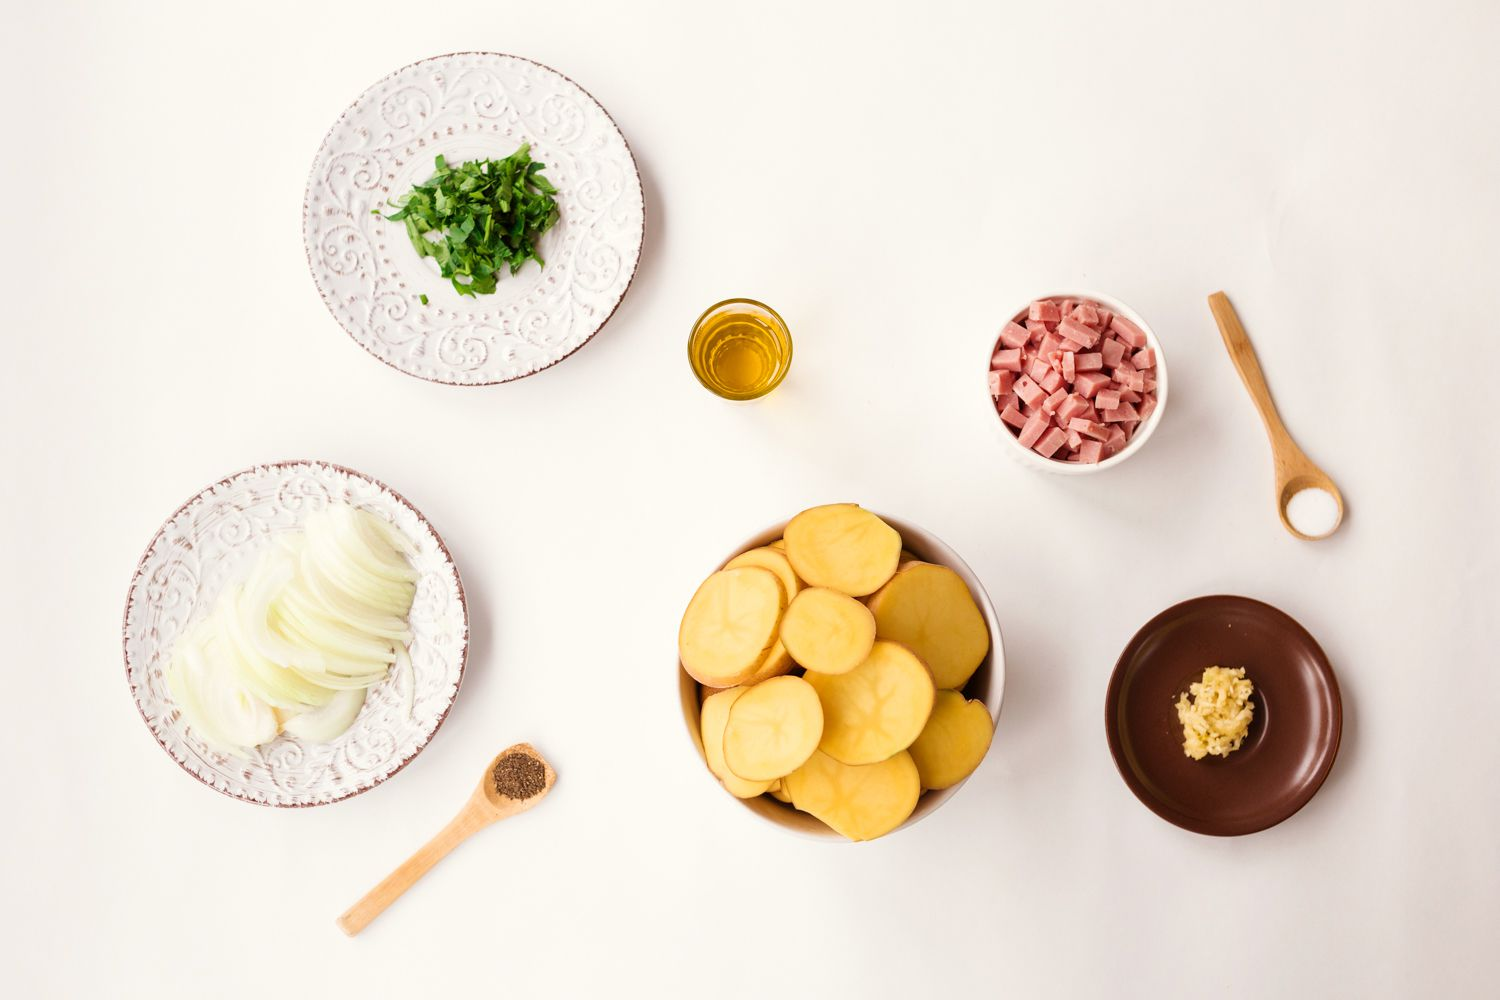 Ingredients for roasted potatoes with ham